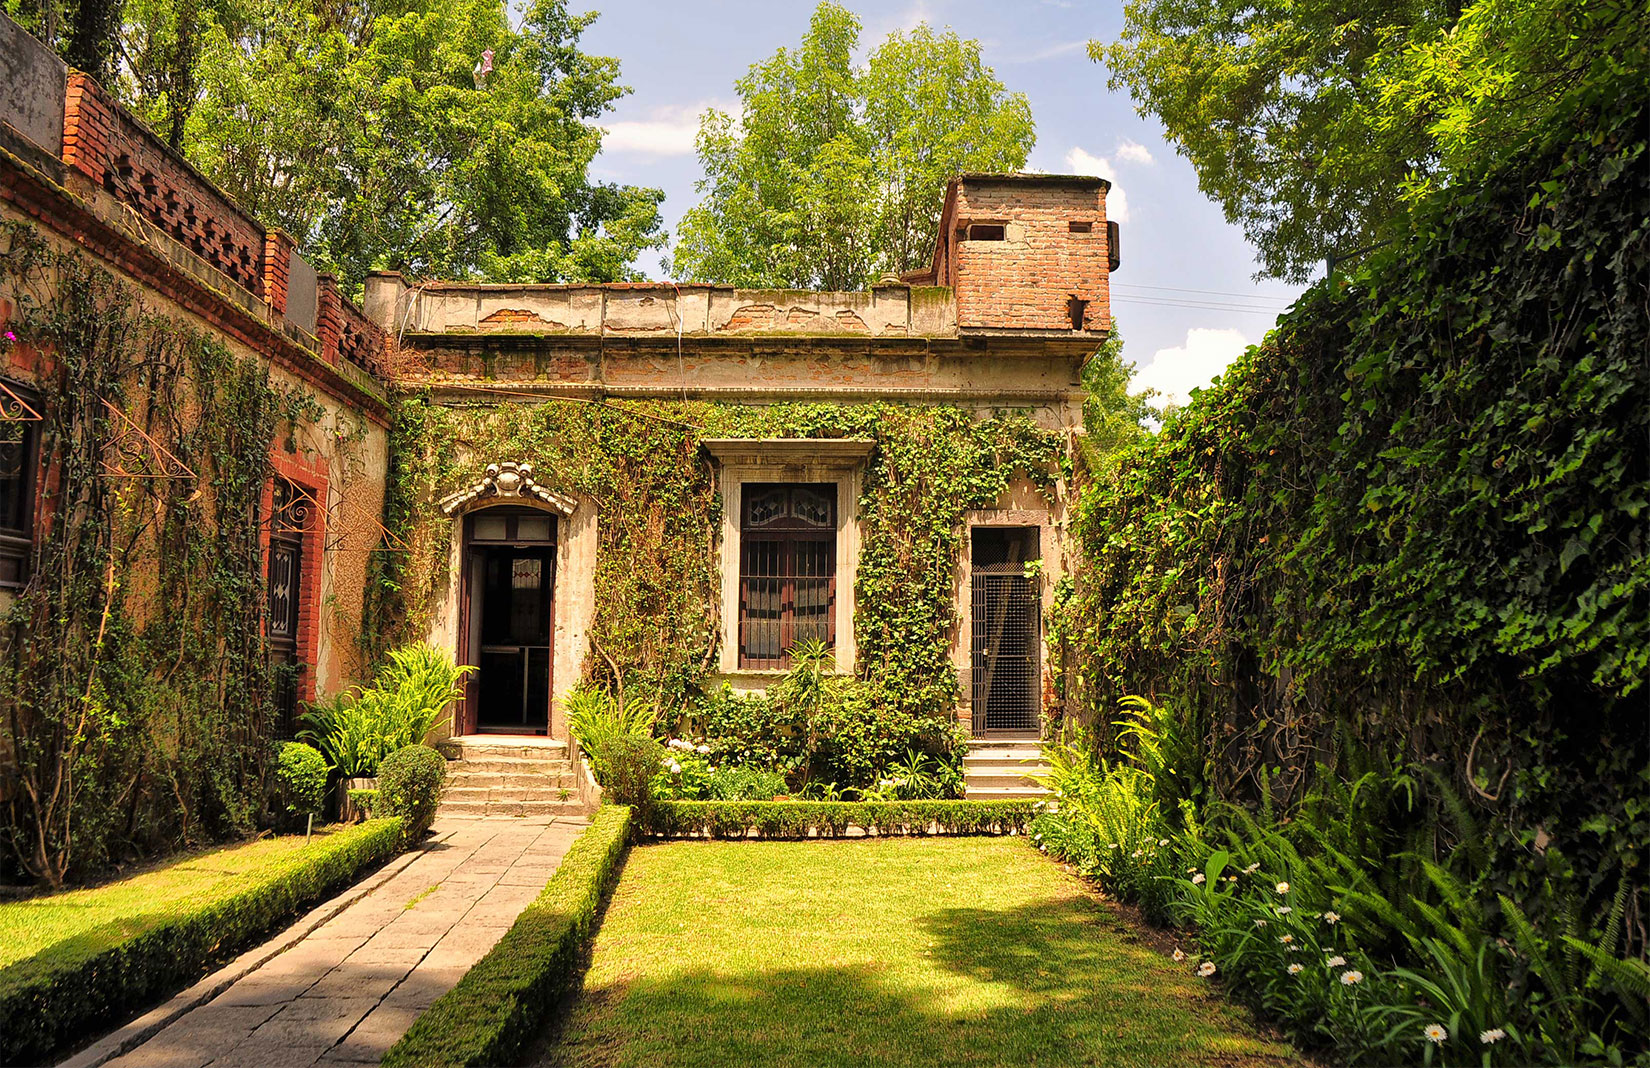 Explore the fascinating house museums of Mexico City